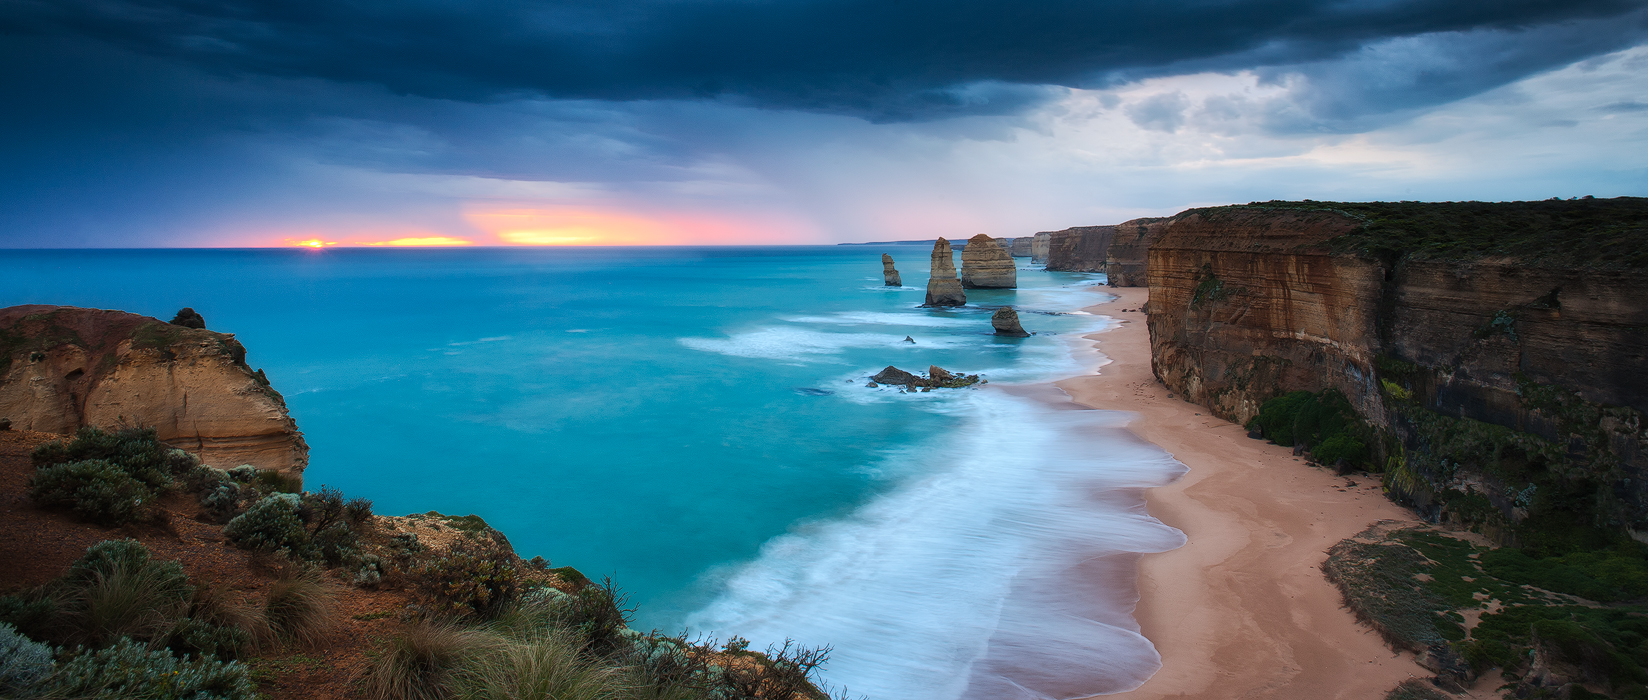 Moody sunset over the 12 apostles, Melbourne, Victoria.